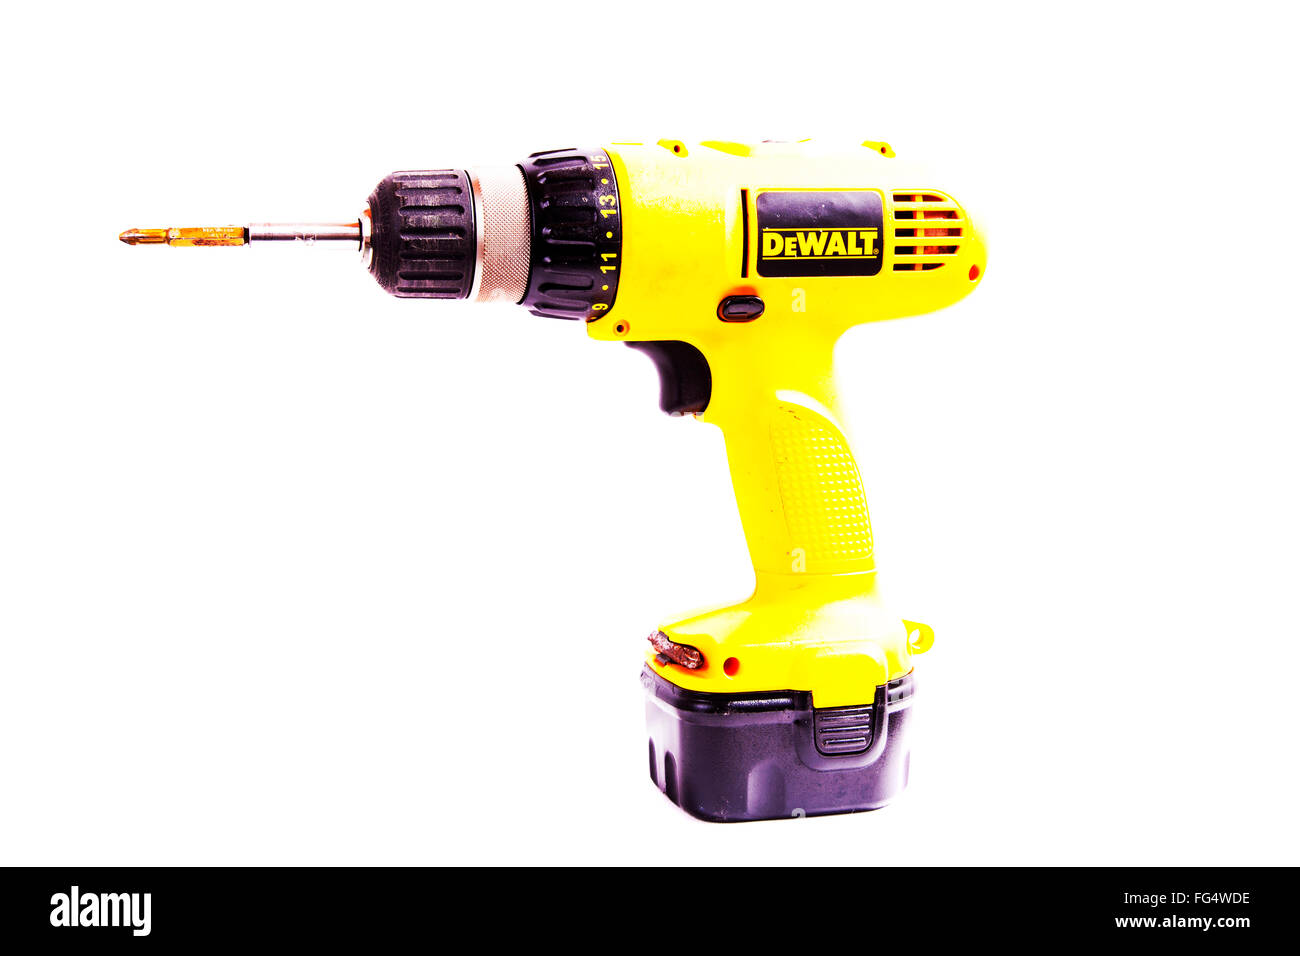 DeWalt de walt drill cordless tool battery operated rechargeable hand tool Cut out cutout product brand isolated - Stock Image